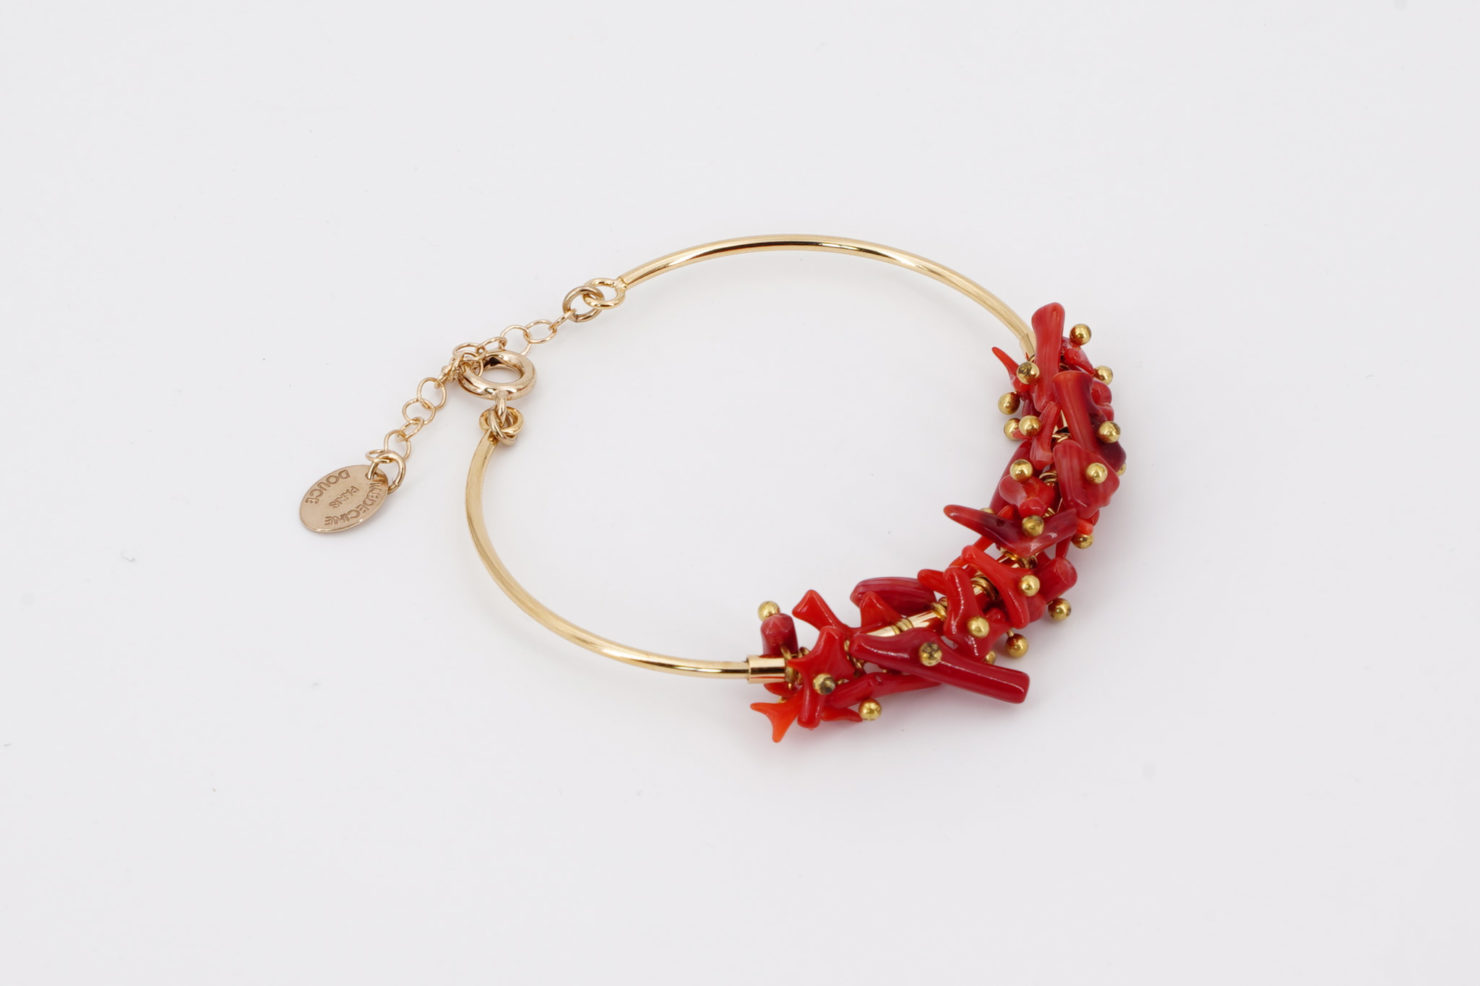 SANTORIN BANGLE MAXI RED - MEDICINE DOUCE